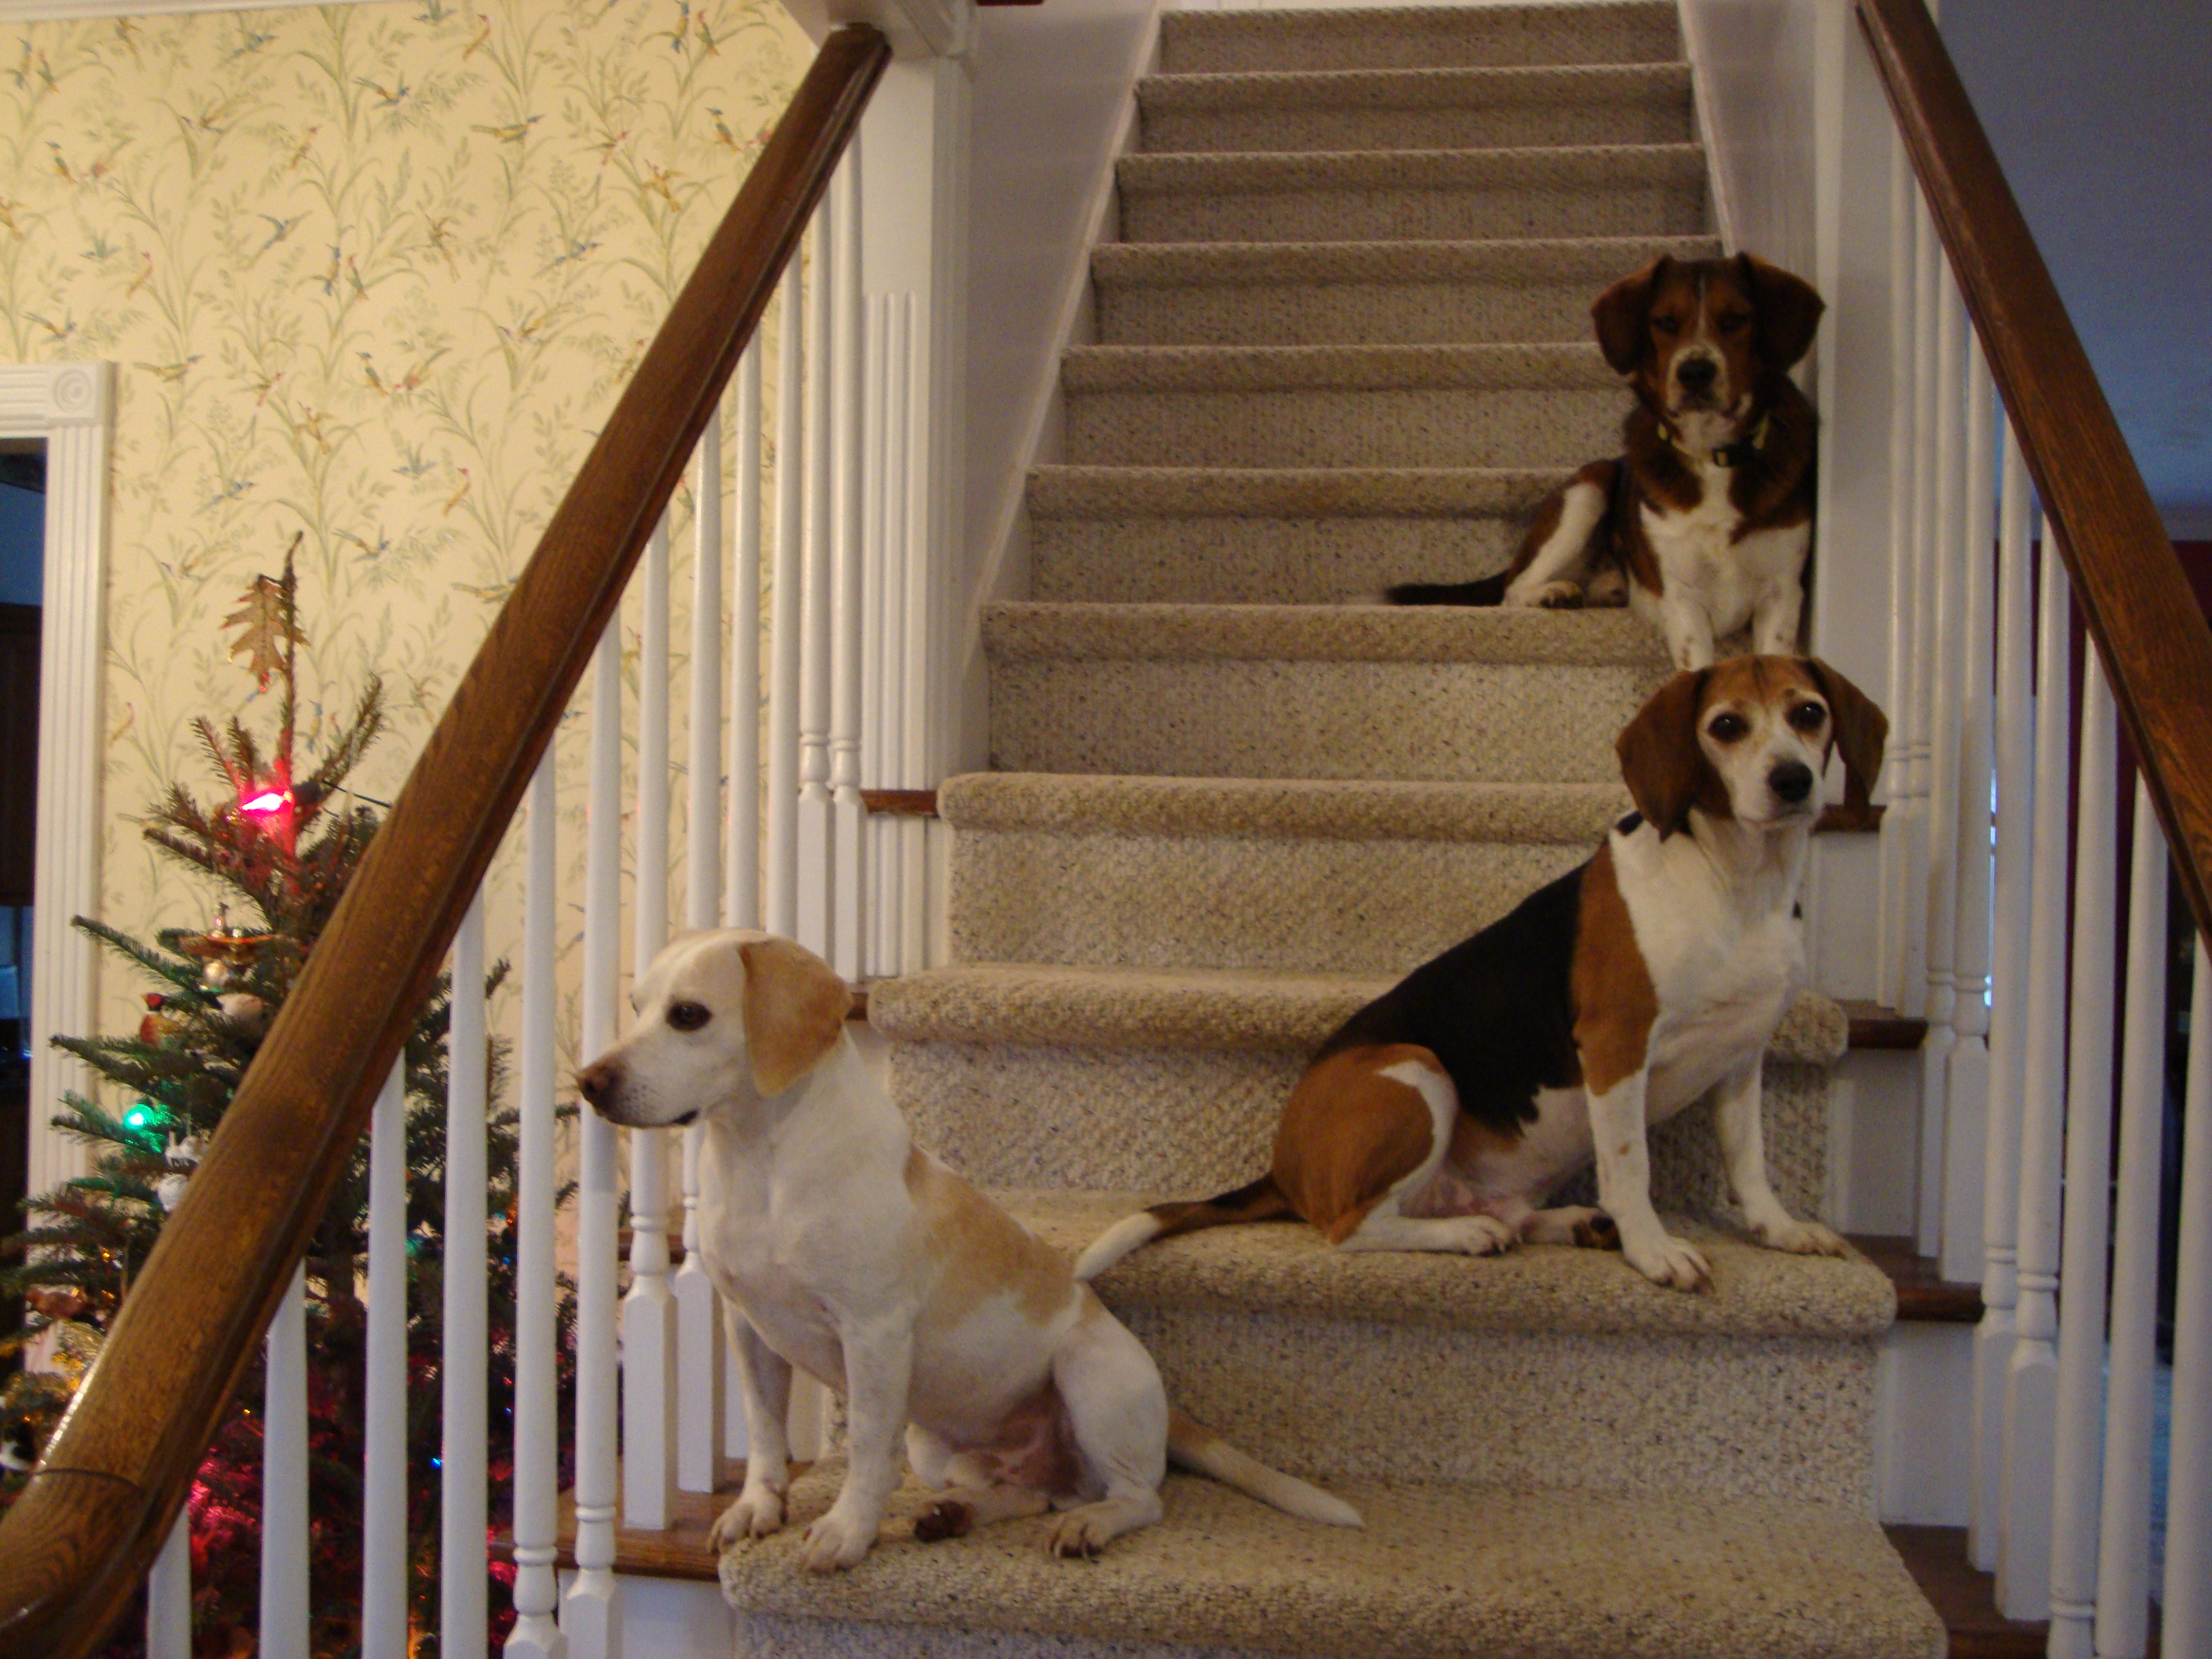 House hounds on the stairs